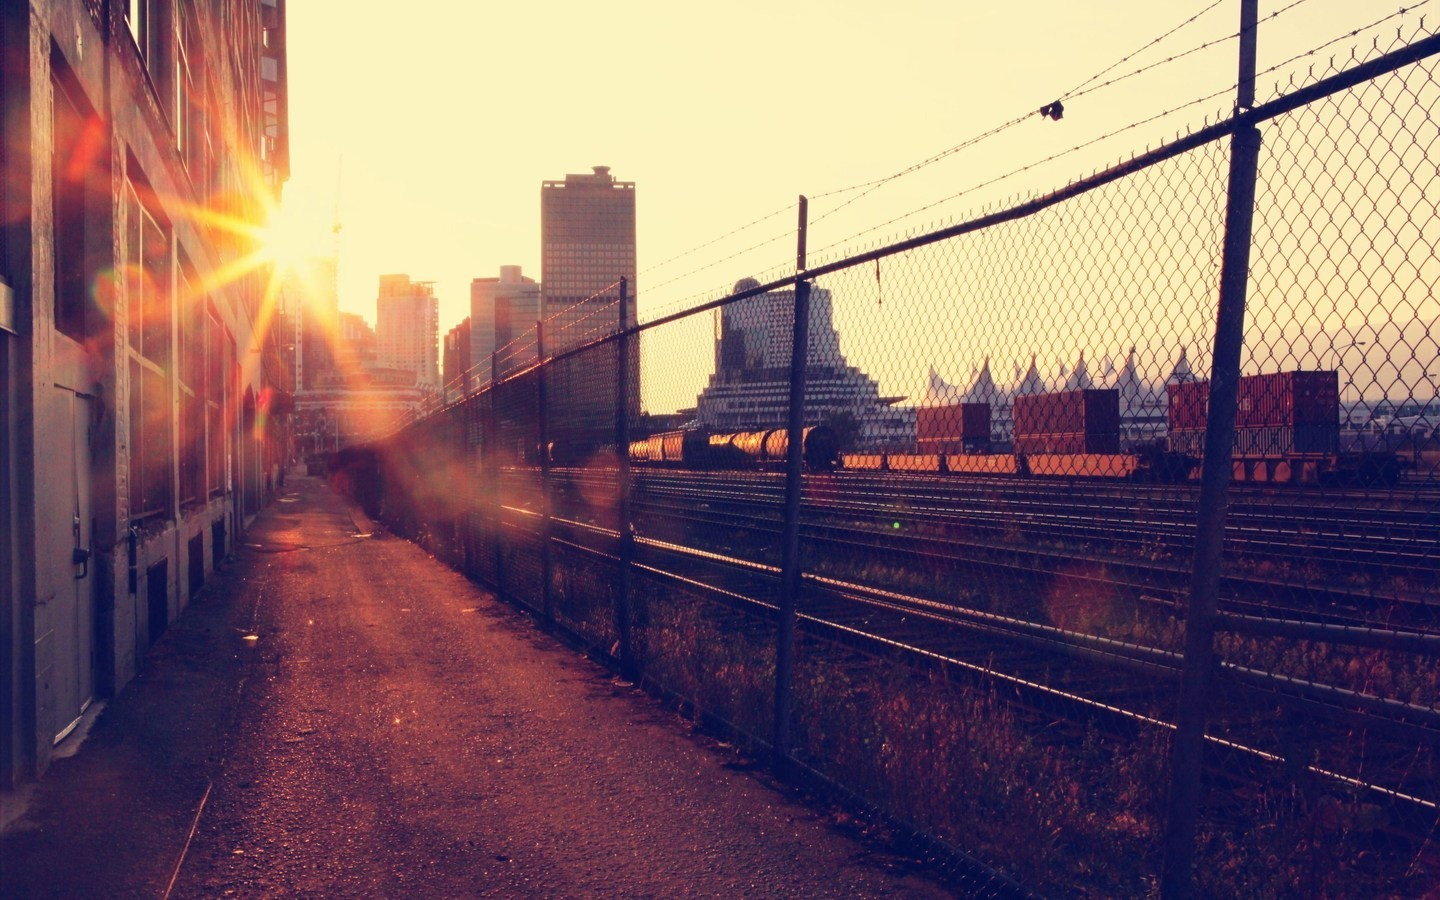 sunset cityscapes streets urban HD Wallpaper